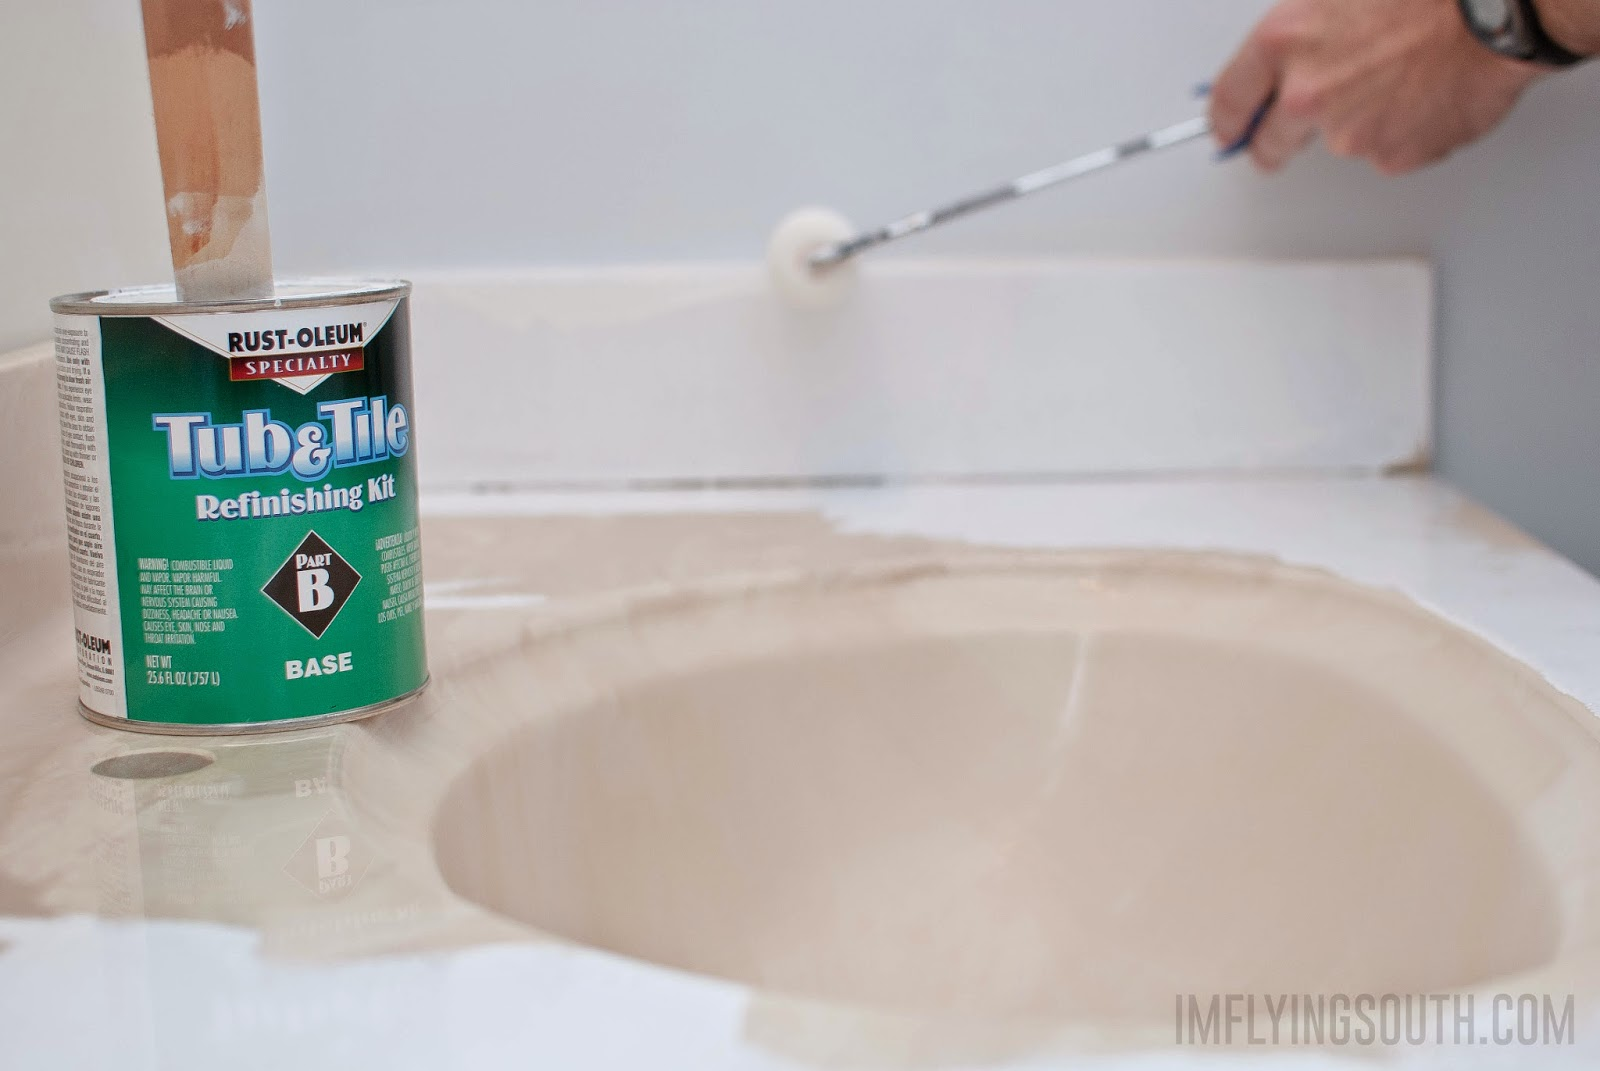 use tub and tile paint to refinish an integral sink and countertop bathroom vanity - I